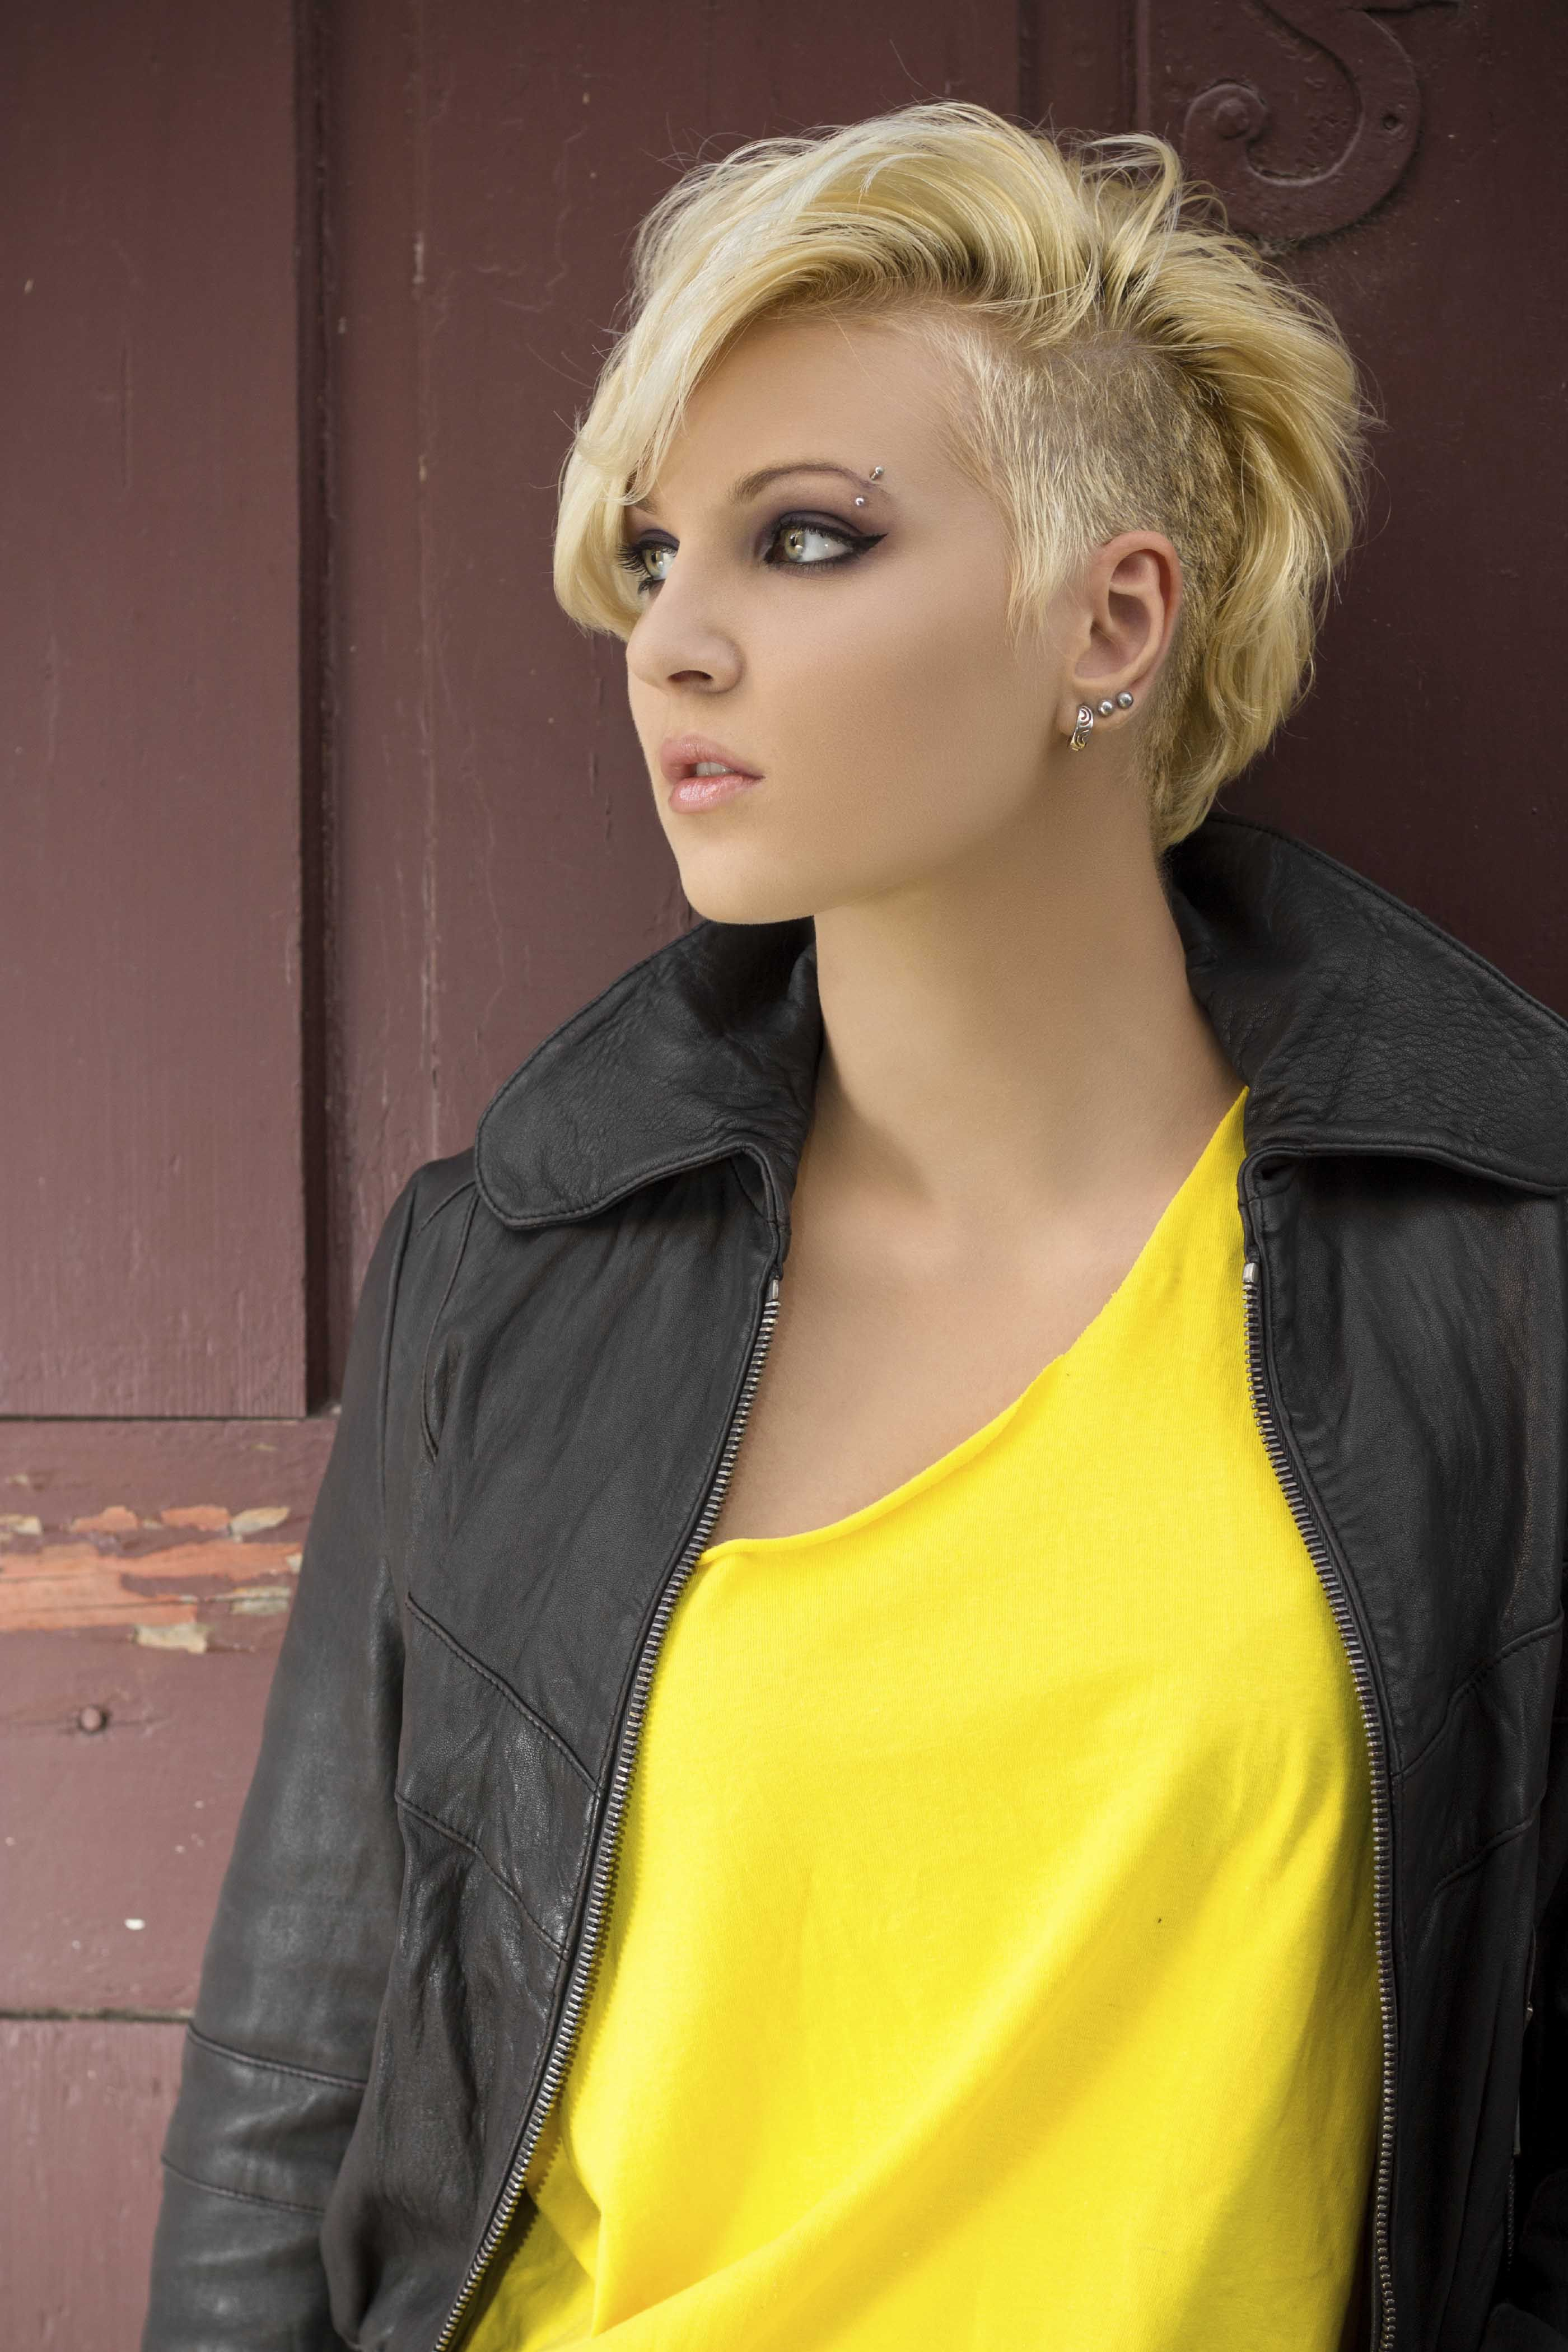 Sideshaven mohawk hairstyles for women pixie cut pictures